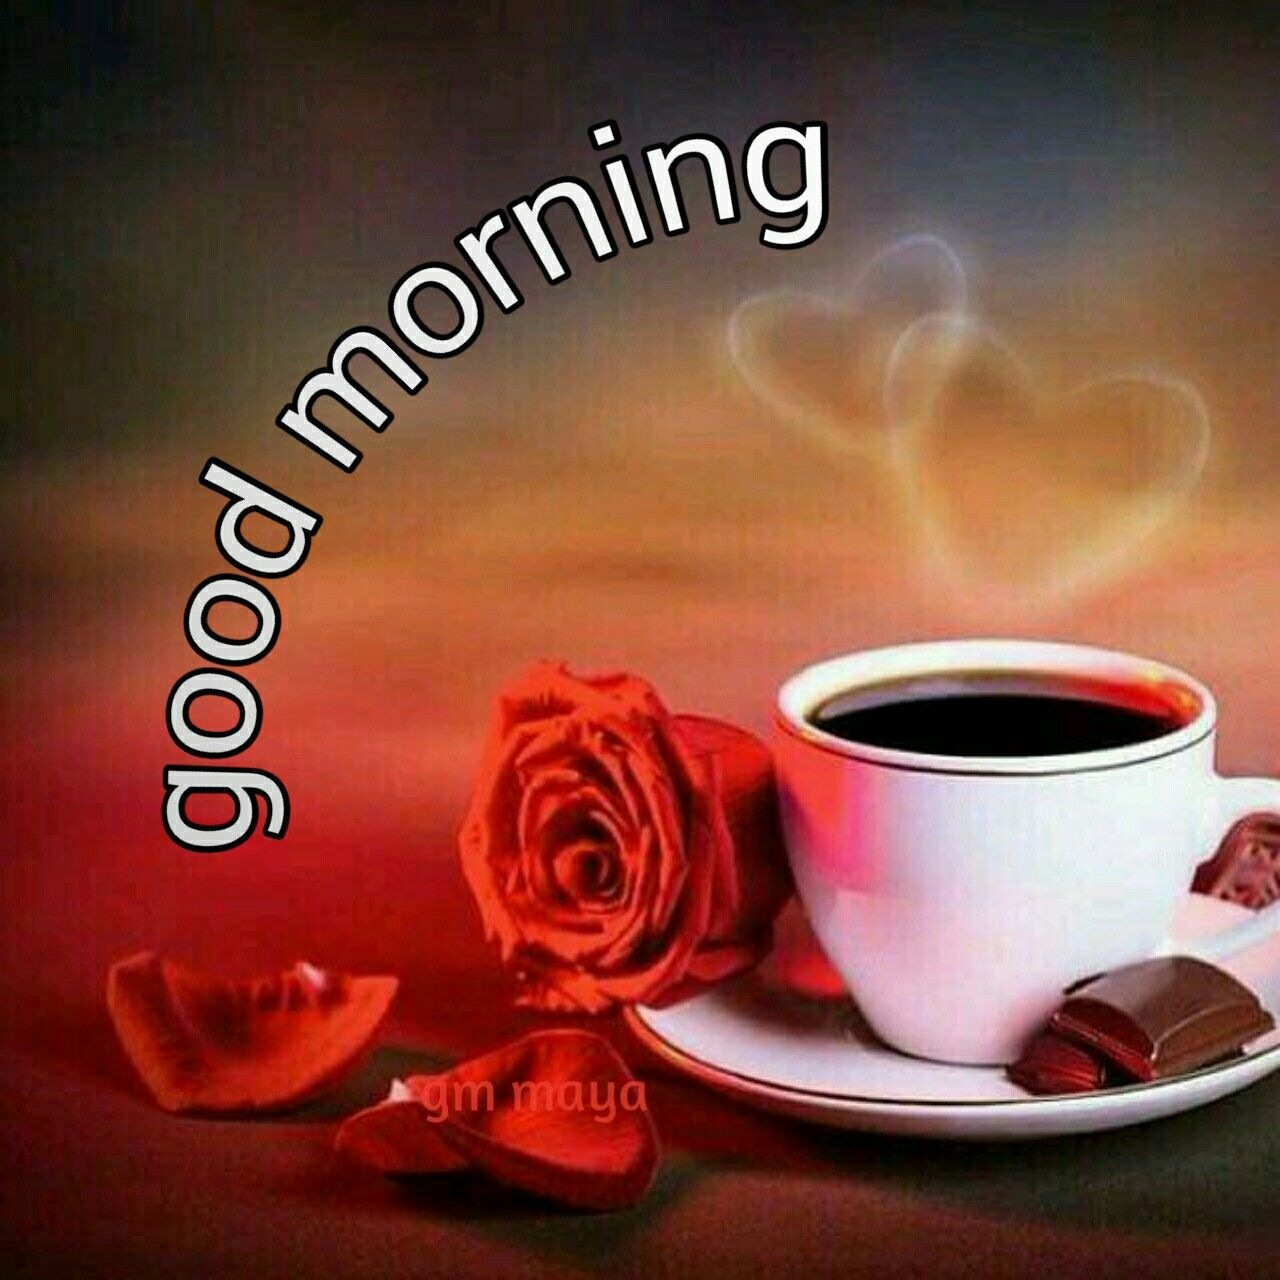 New Good Morning Love Gm Maya Maya Good Morning Good Morning